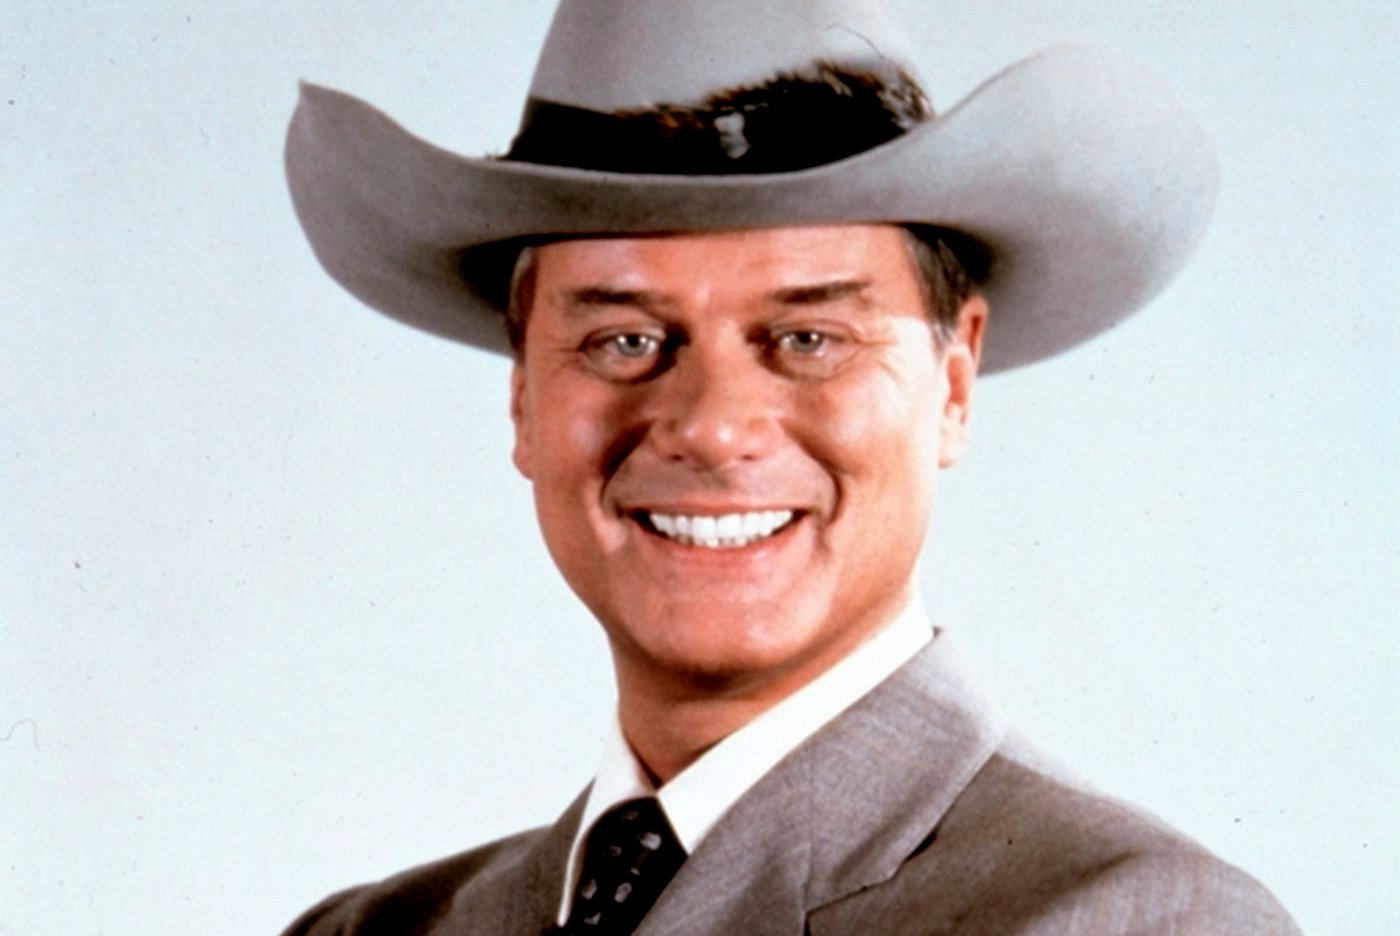 Larry Hagman as J.R. Ewing of Dallas